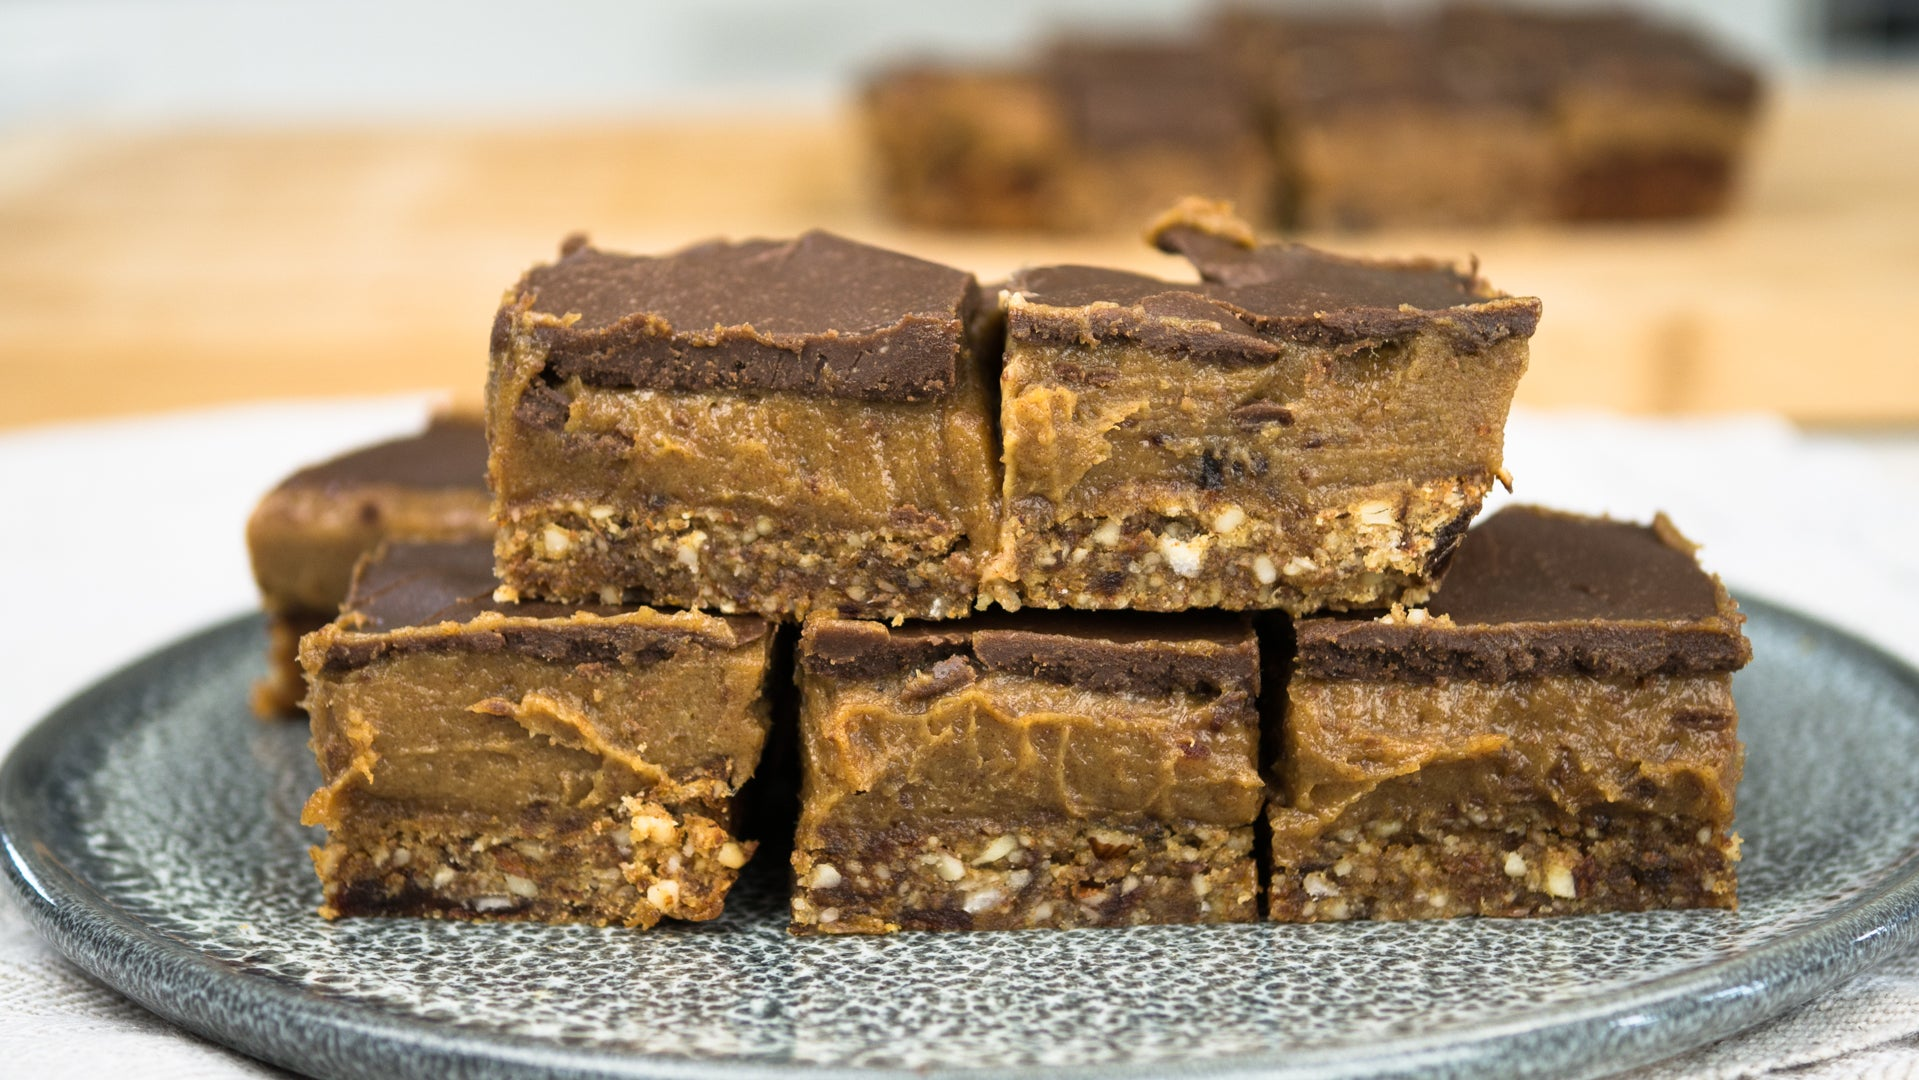 Recipe: Homemade Caramel Slice